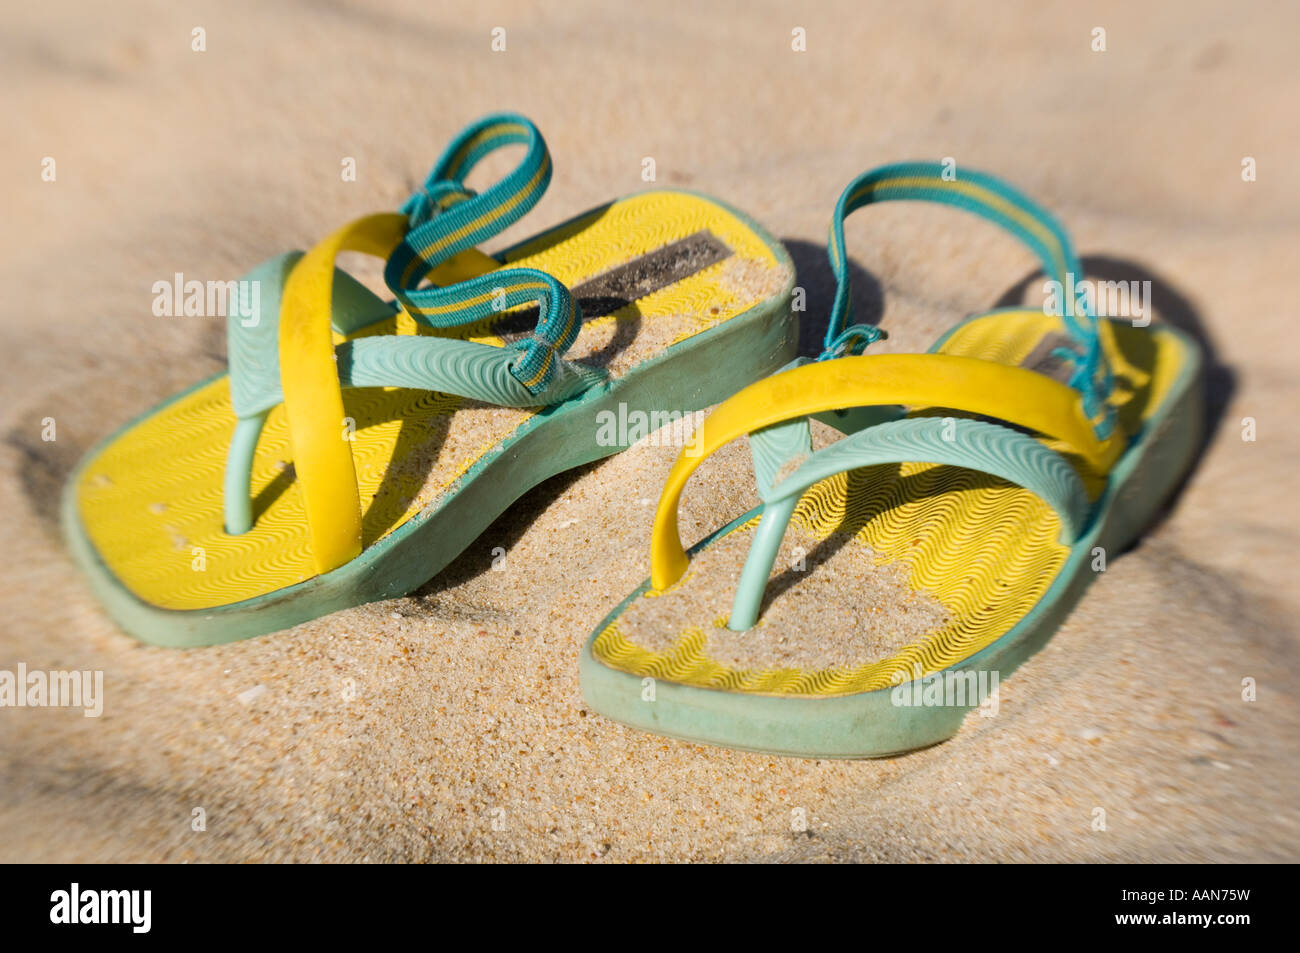 beach shoes - Stock Image